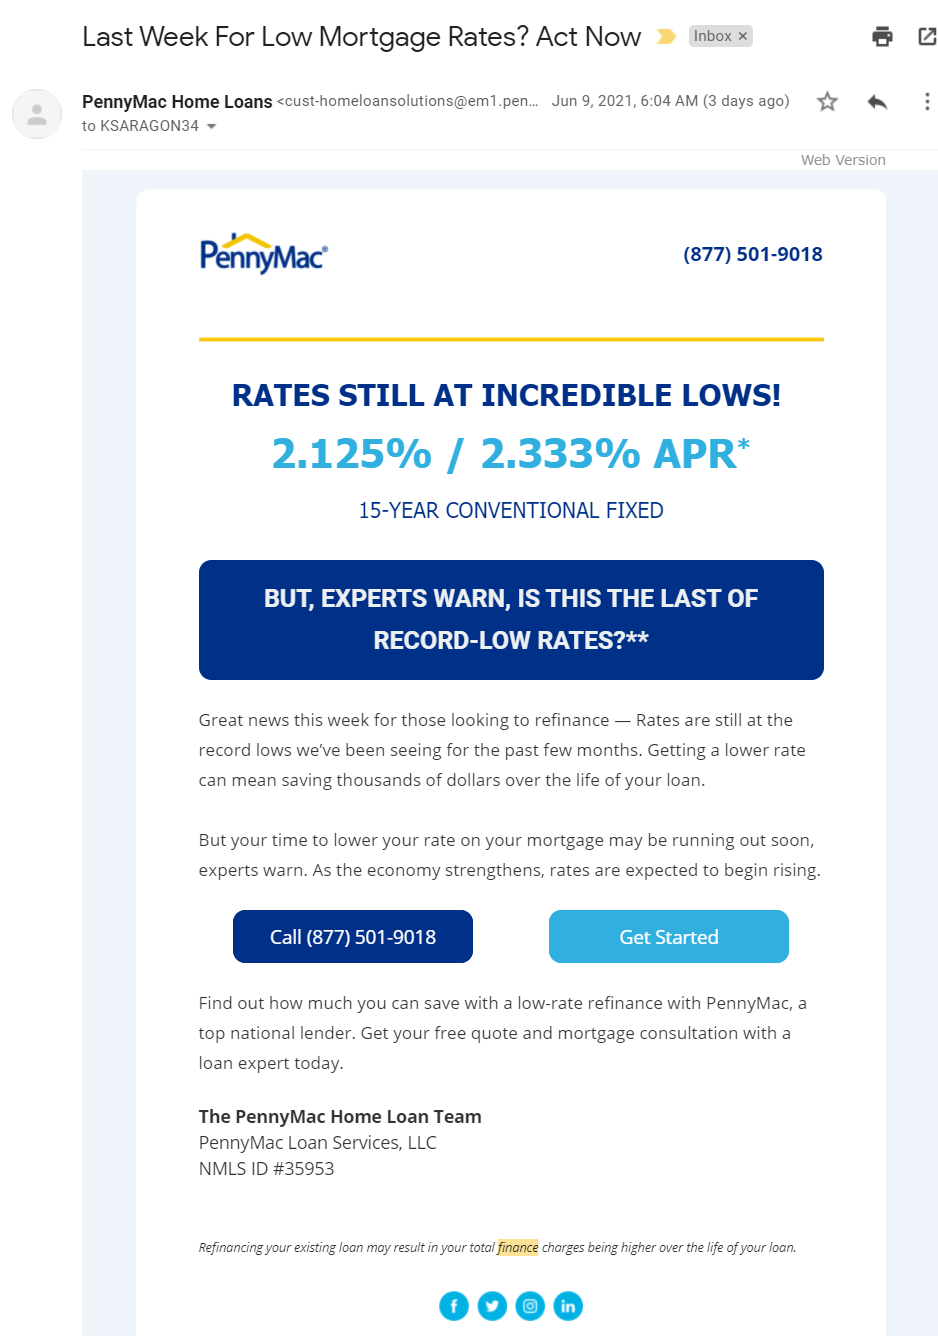 HTML Email from PennyMac Home Loans with blue coloring